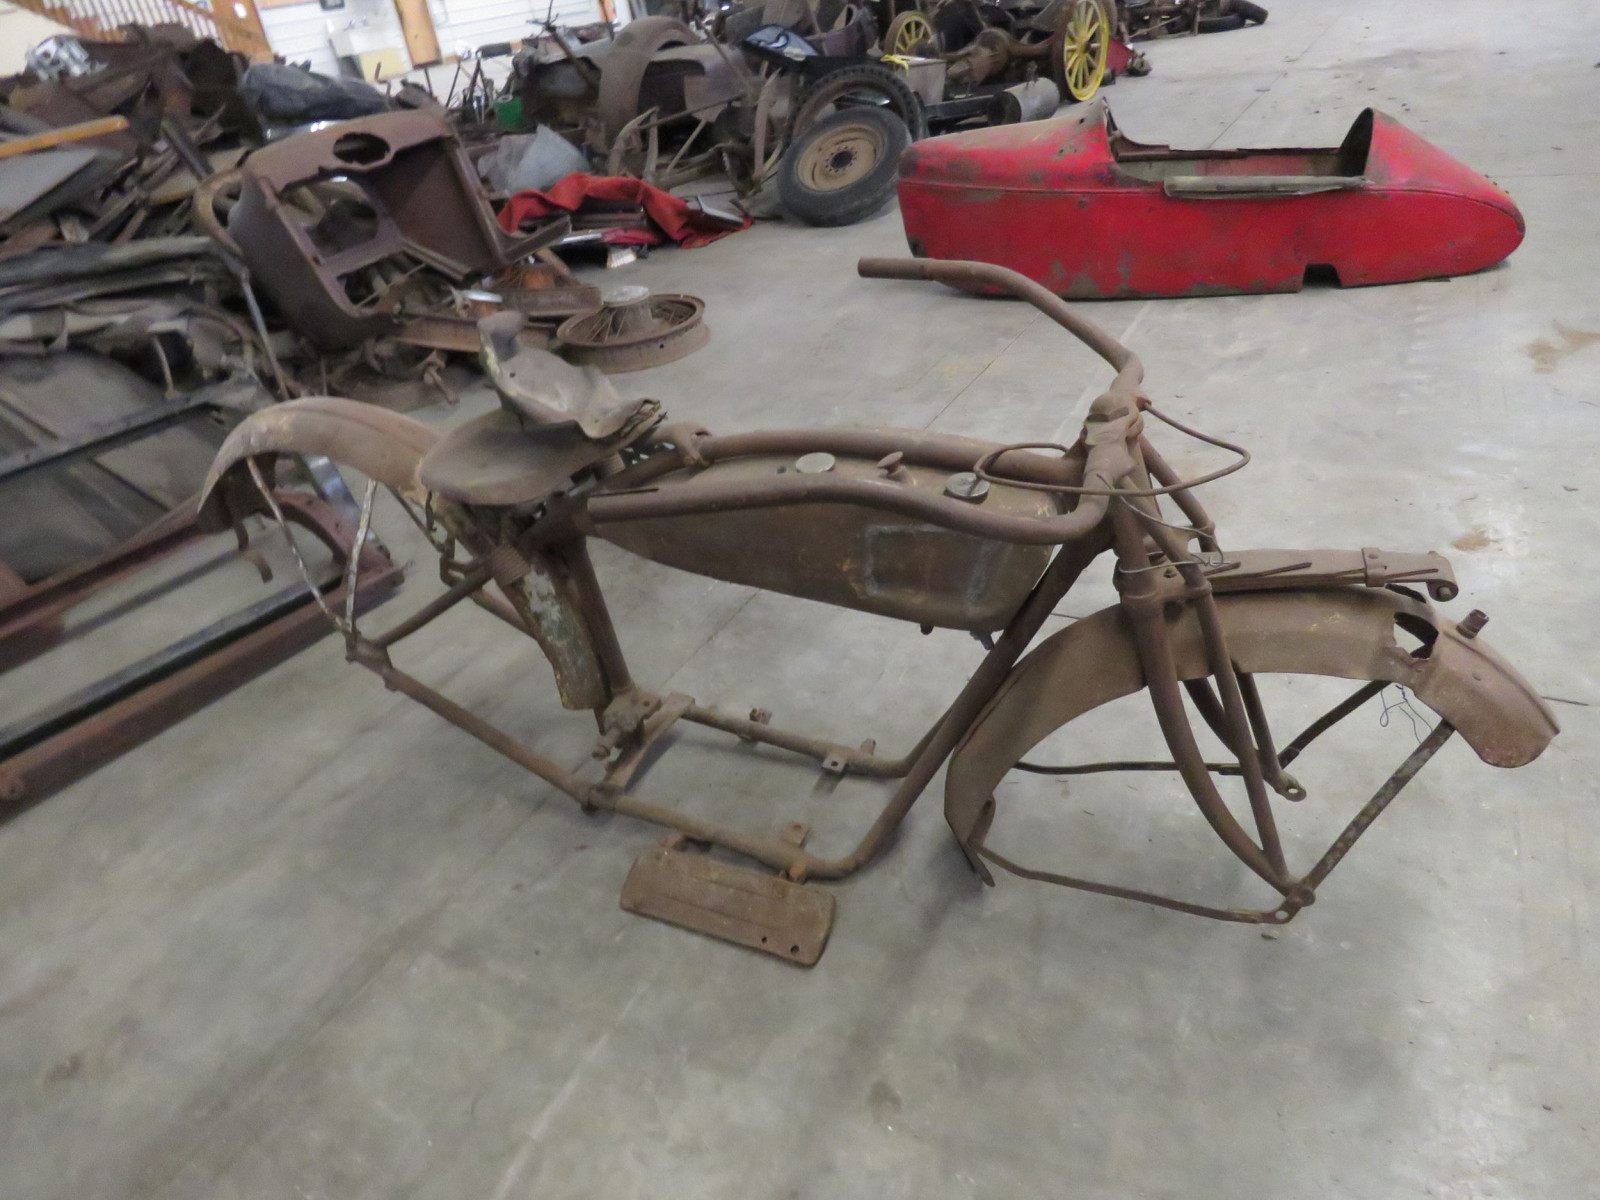 RARE 1920's Indian Motorcycle Project - Image 4